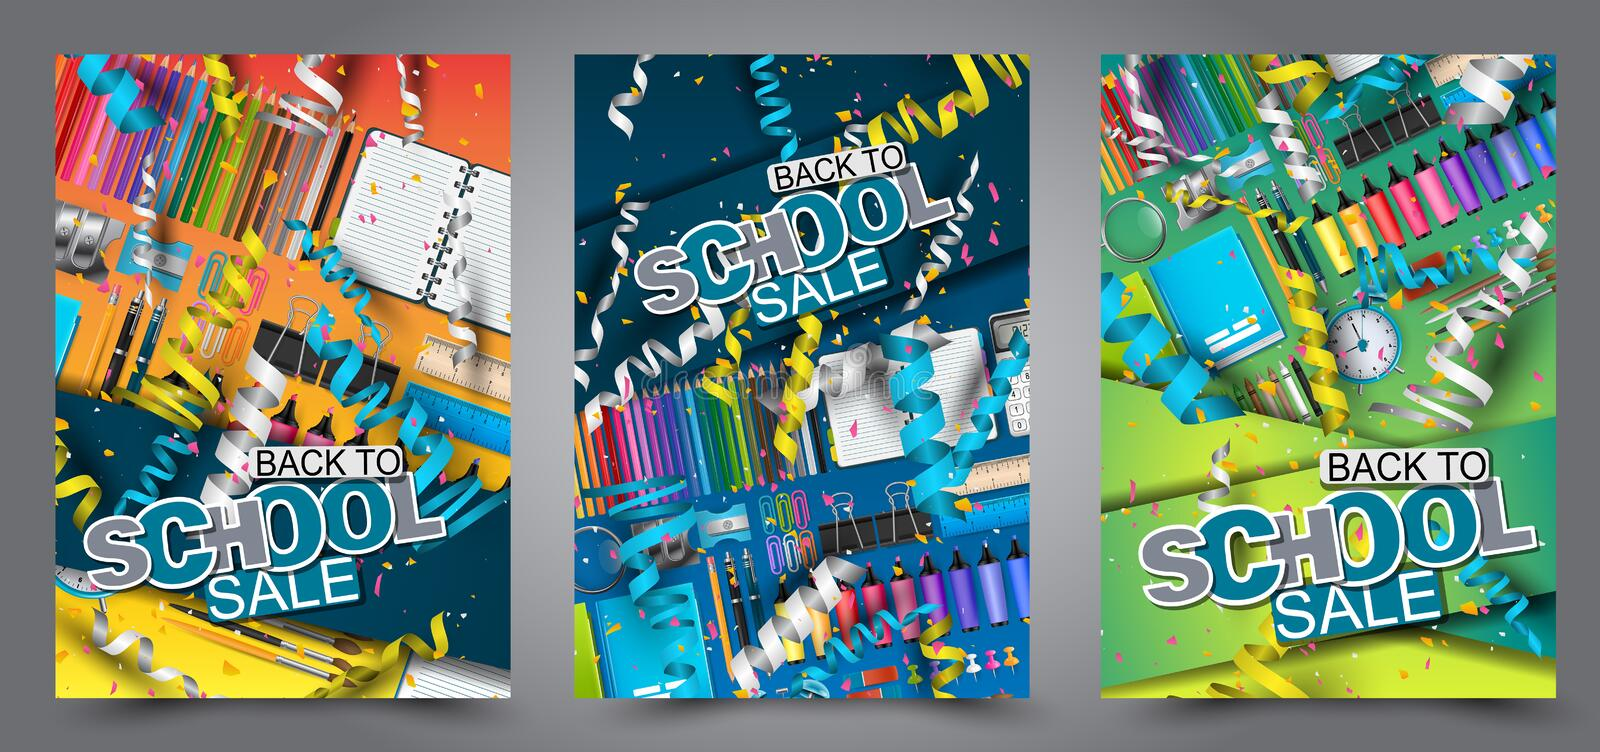 Back to school sale flyer brochure. a4 background with confetti and falling ringlets celebration concept. stock illustration